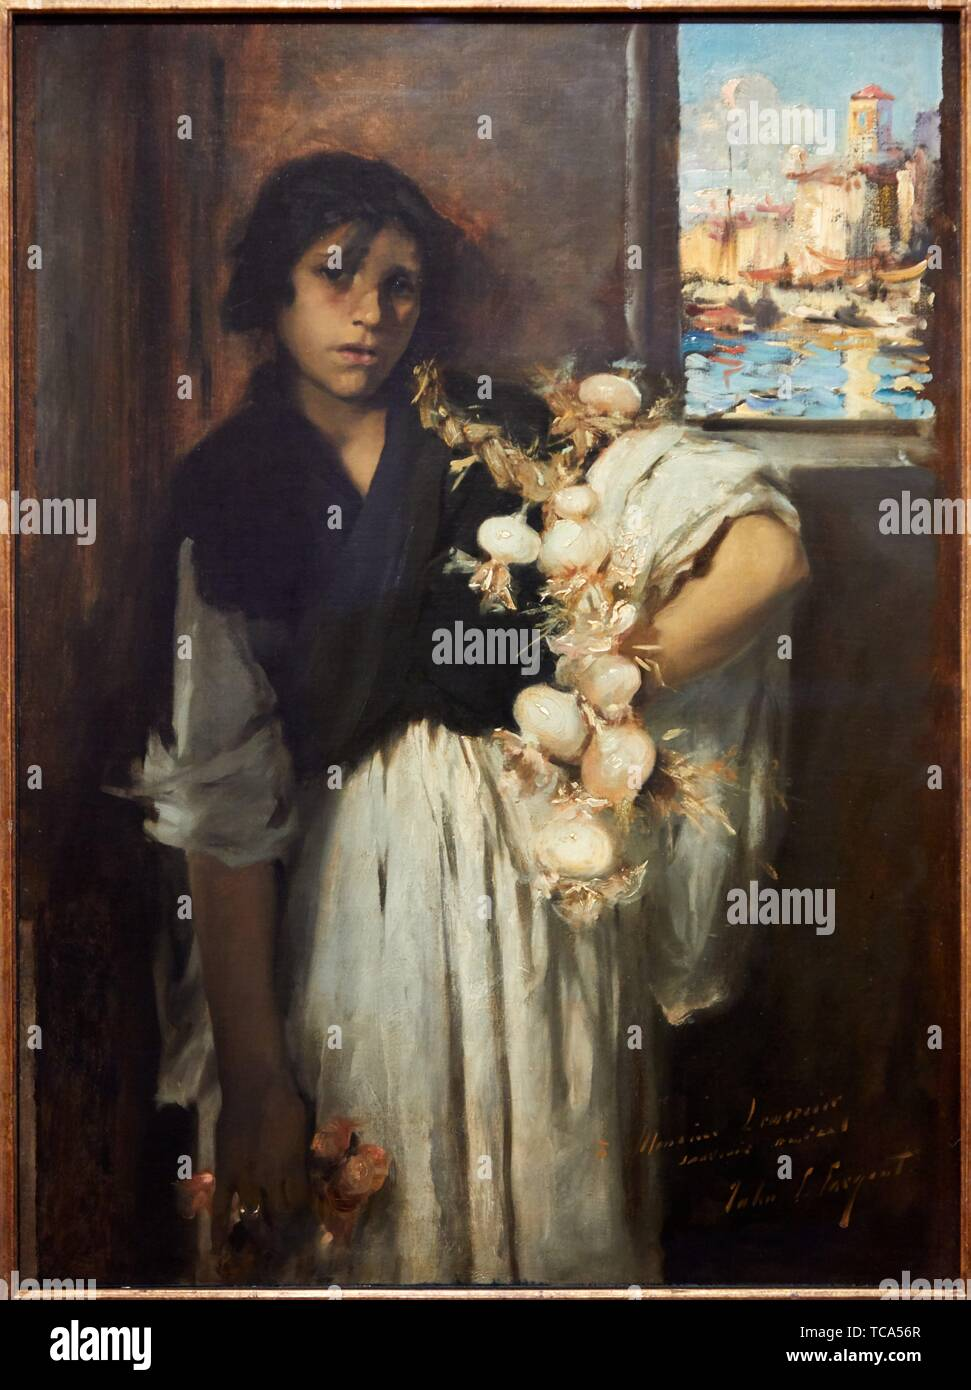 """""""Venetian Onion Seller"""", 1880-1882, John Singer Sargent, Thyssen Bornemisza Museum, Madrid, Spain, Europe Stock Photo"